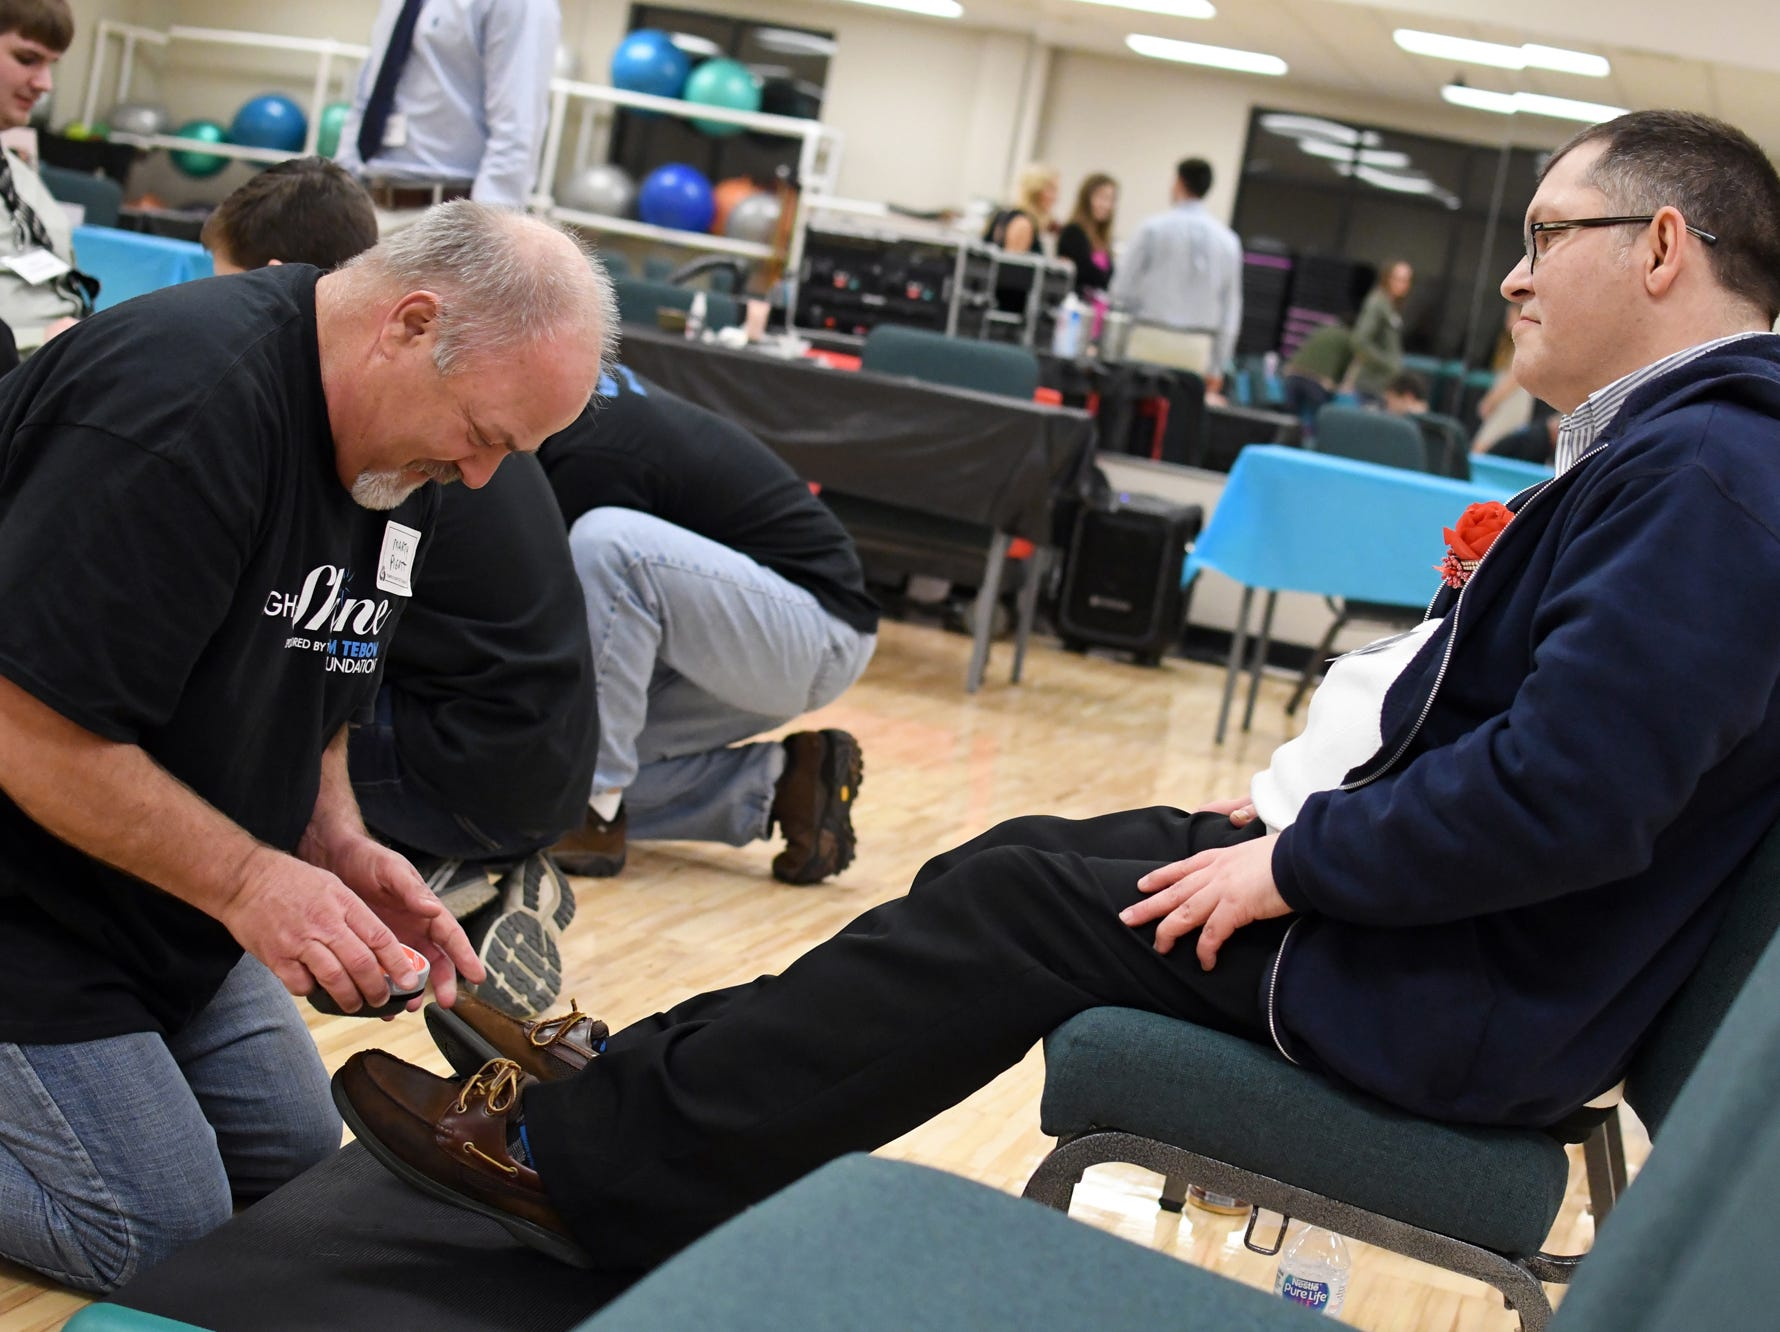 Prom guests gets his shoes polished during the Night to Shine Prom at Temple Baptist Church on Friday, February 8, 2019. Churches around the world hosted the prom by the Tim Tebow Foundation for people with special needs.